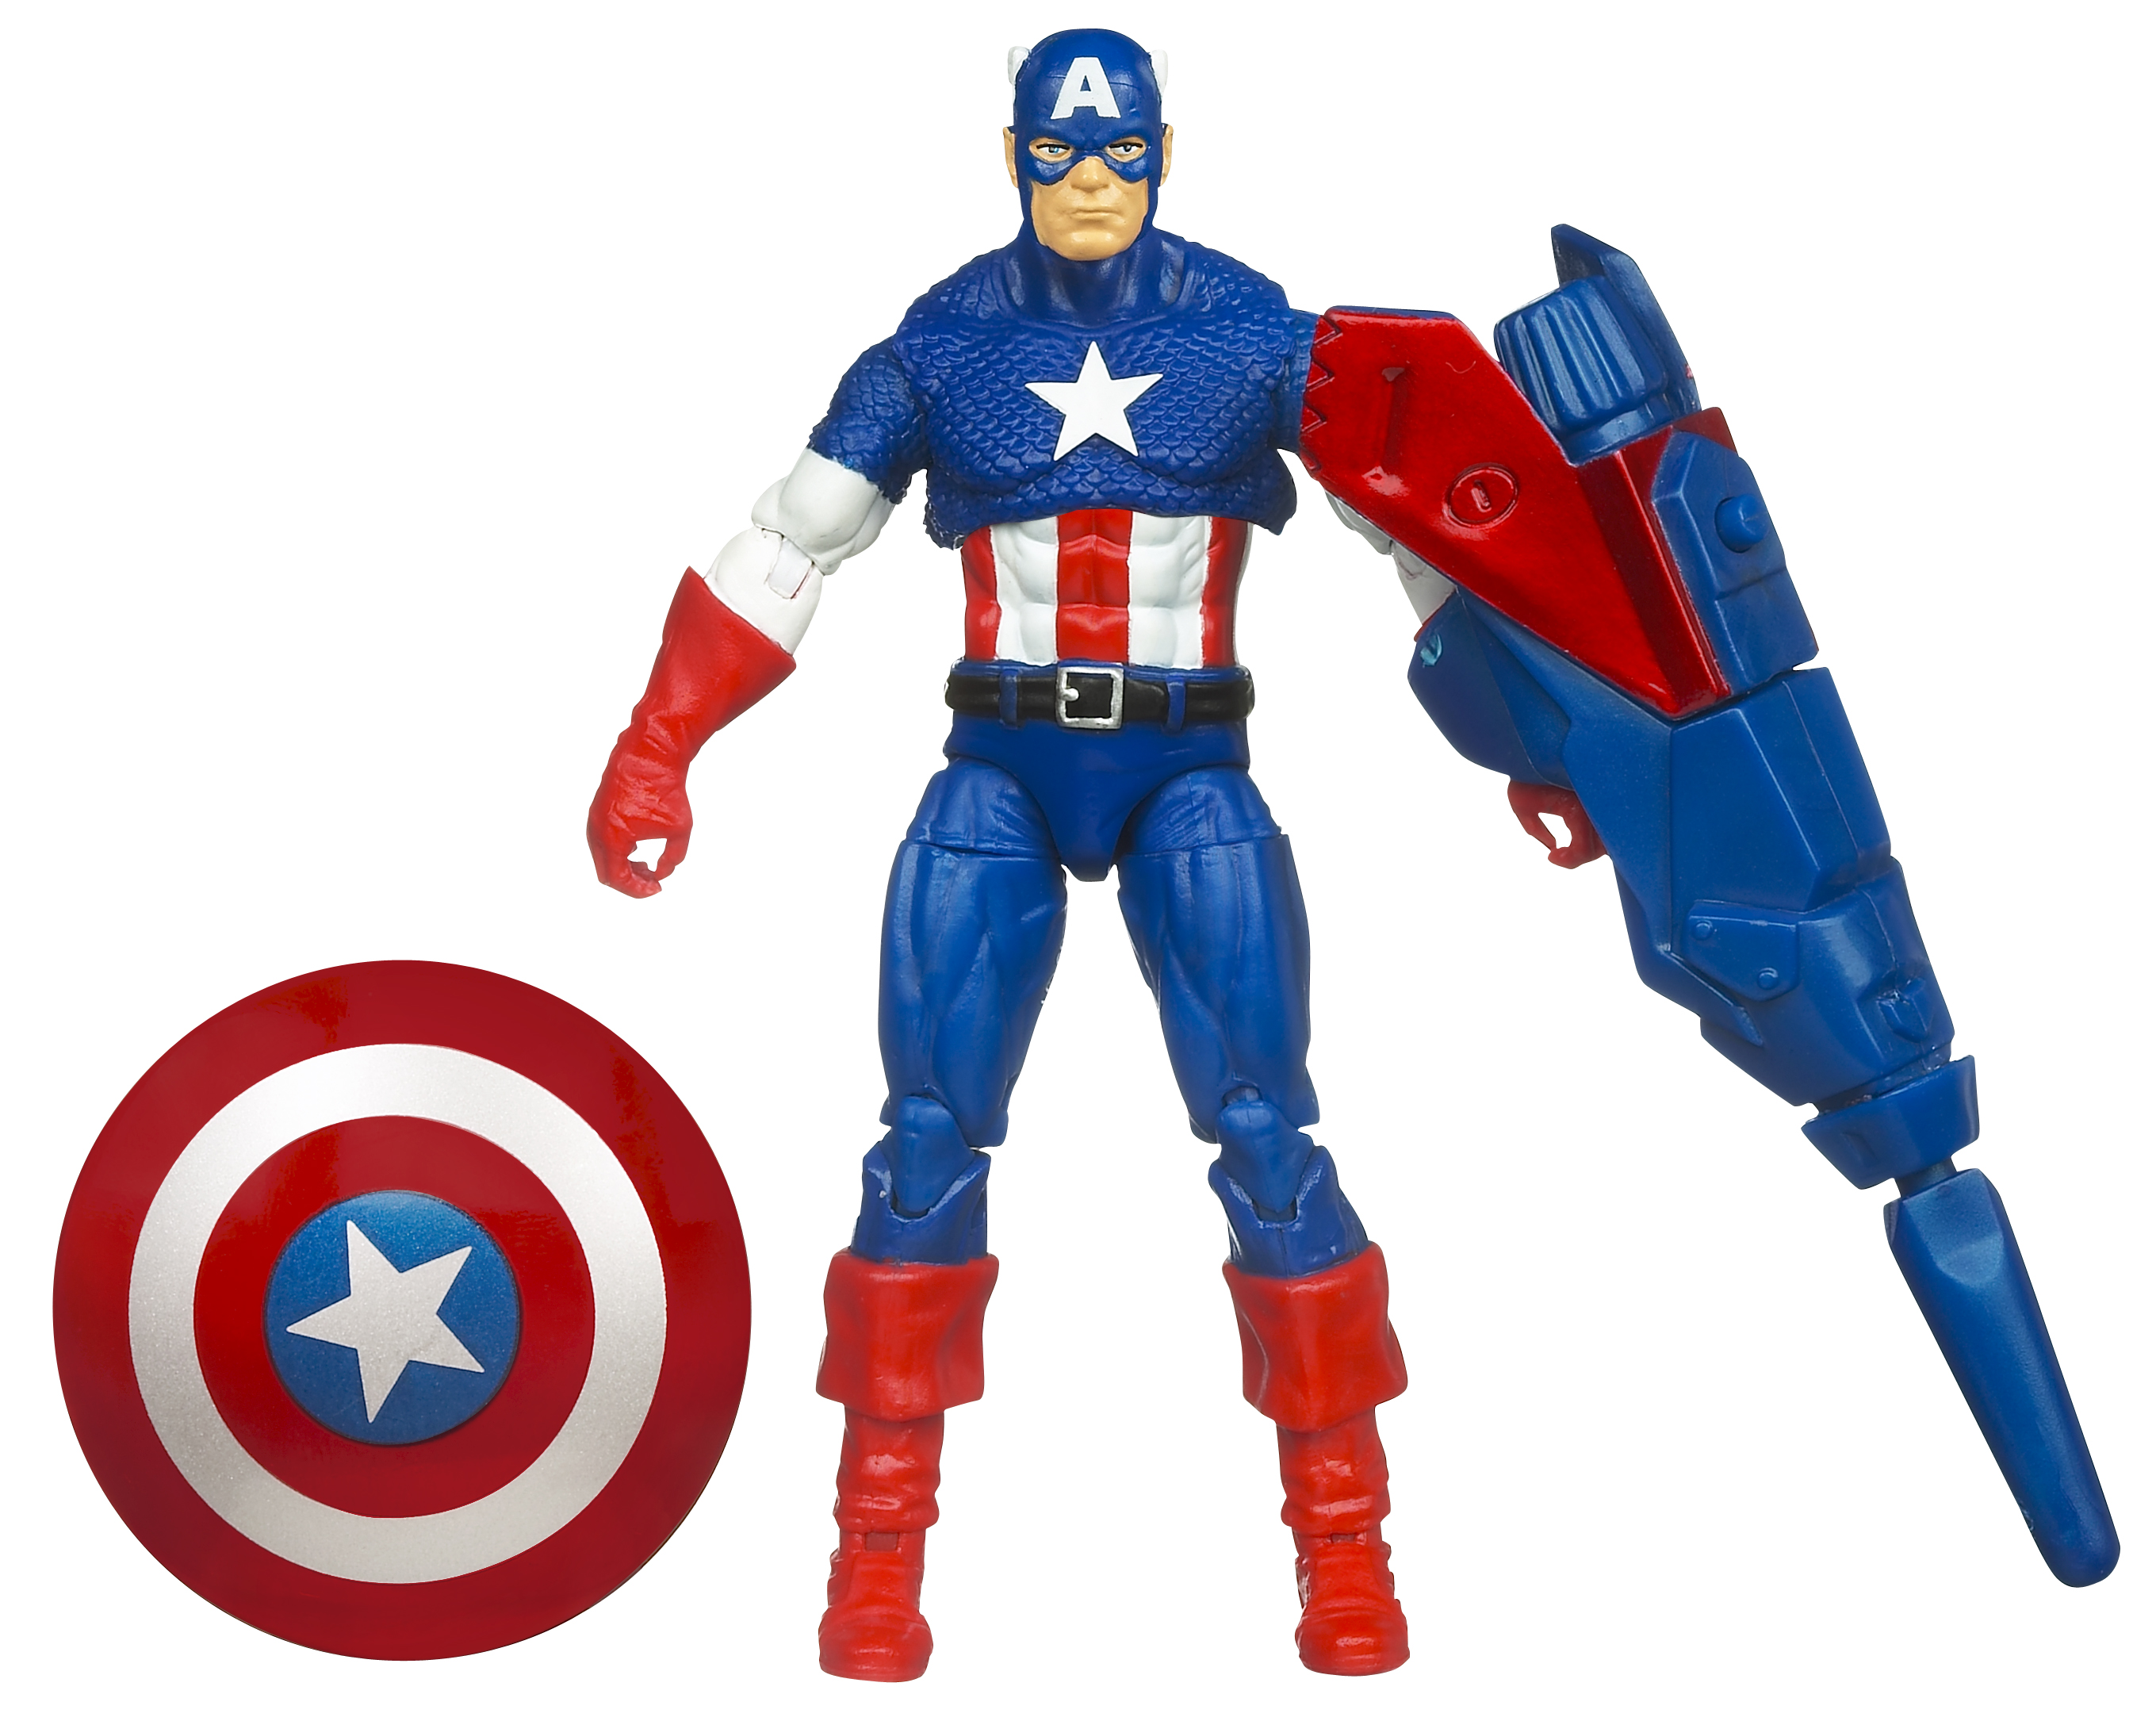 Captain America Wave 1 Toys   Graphic Policy